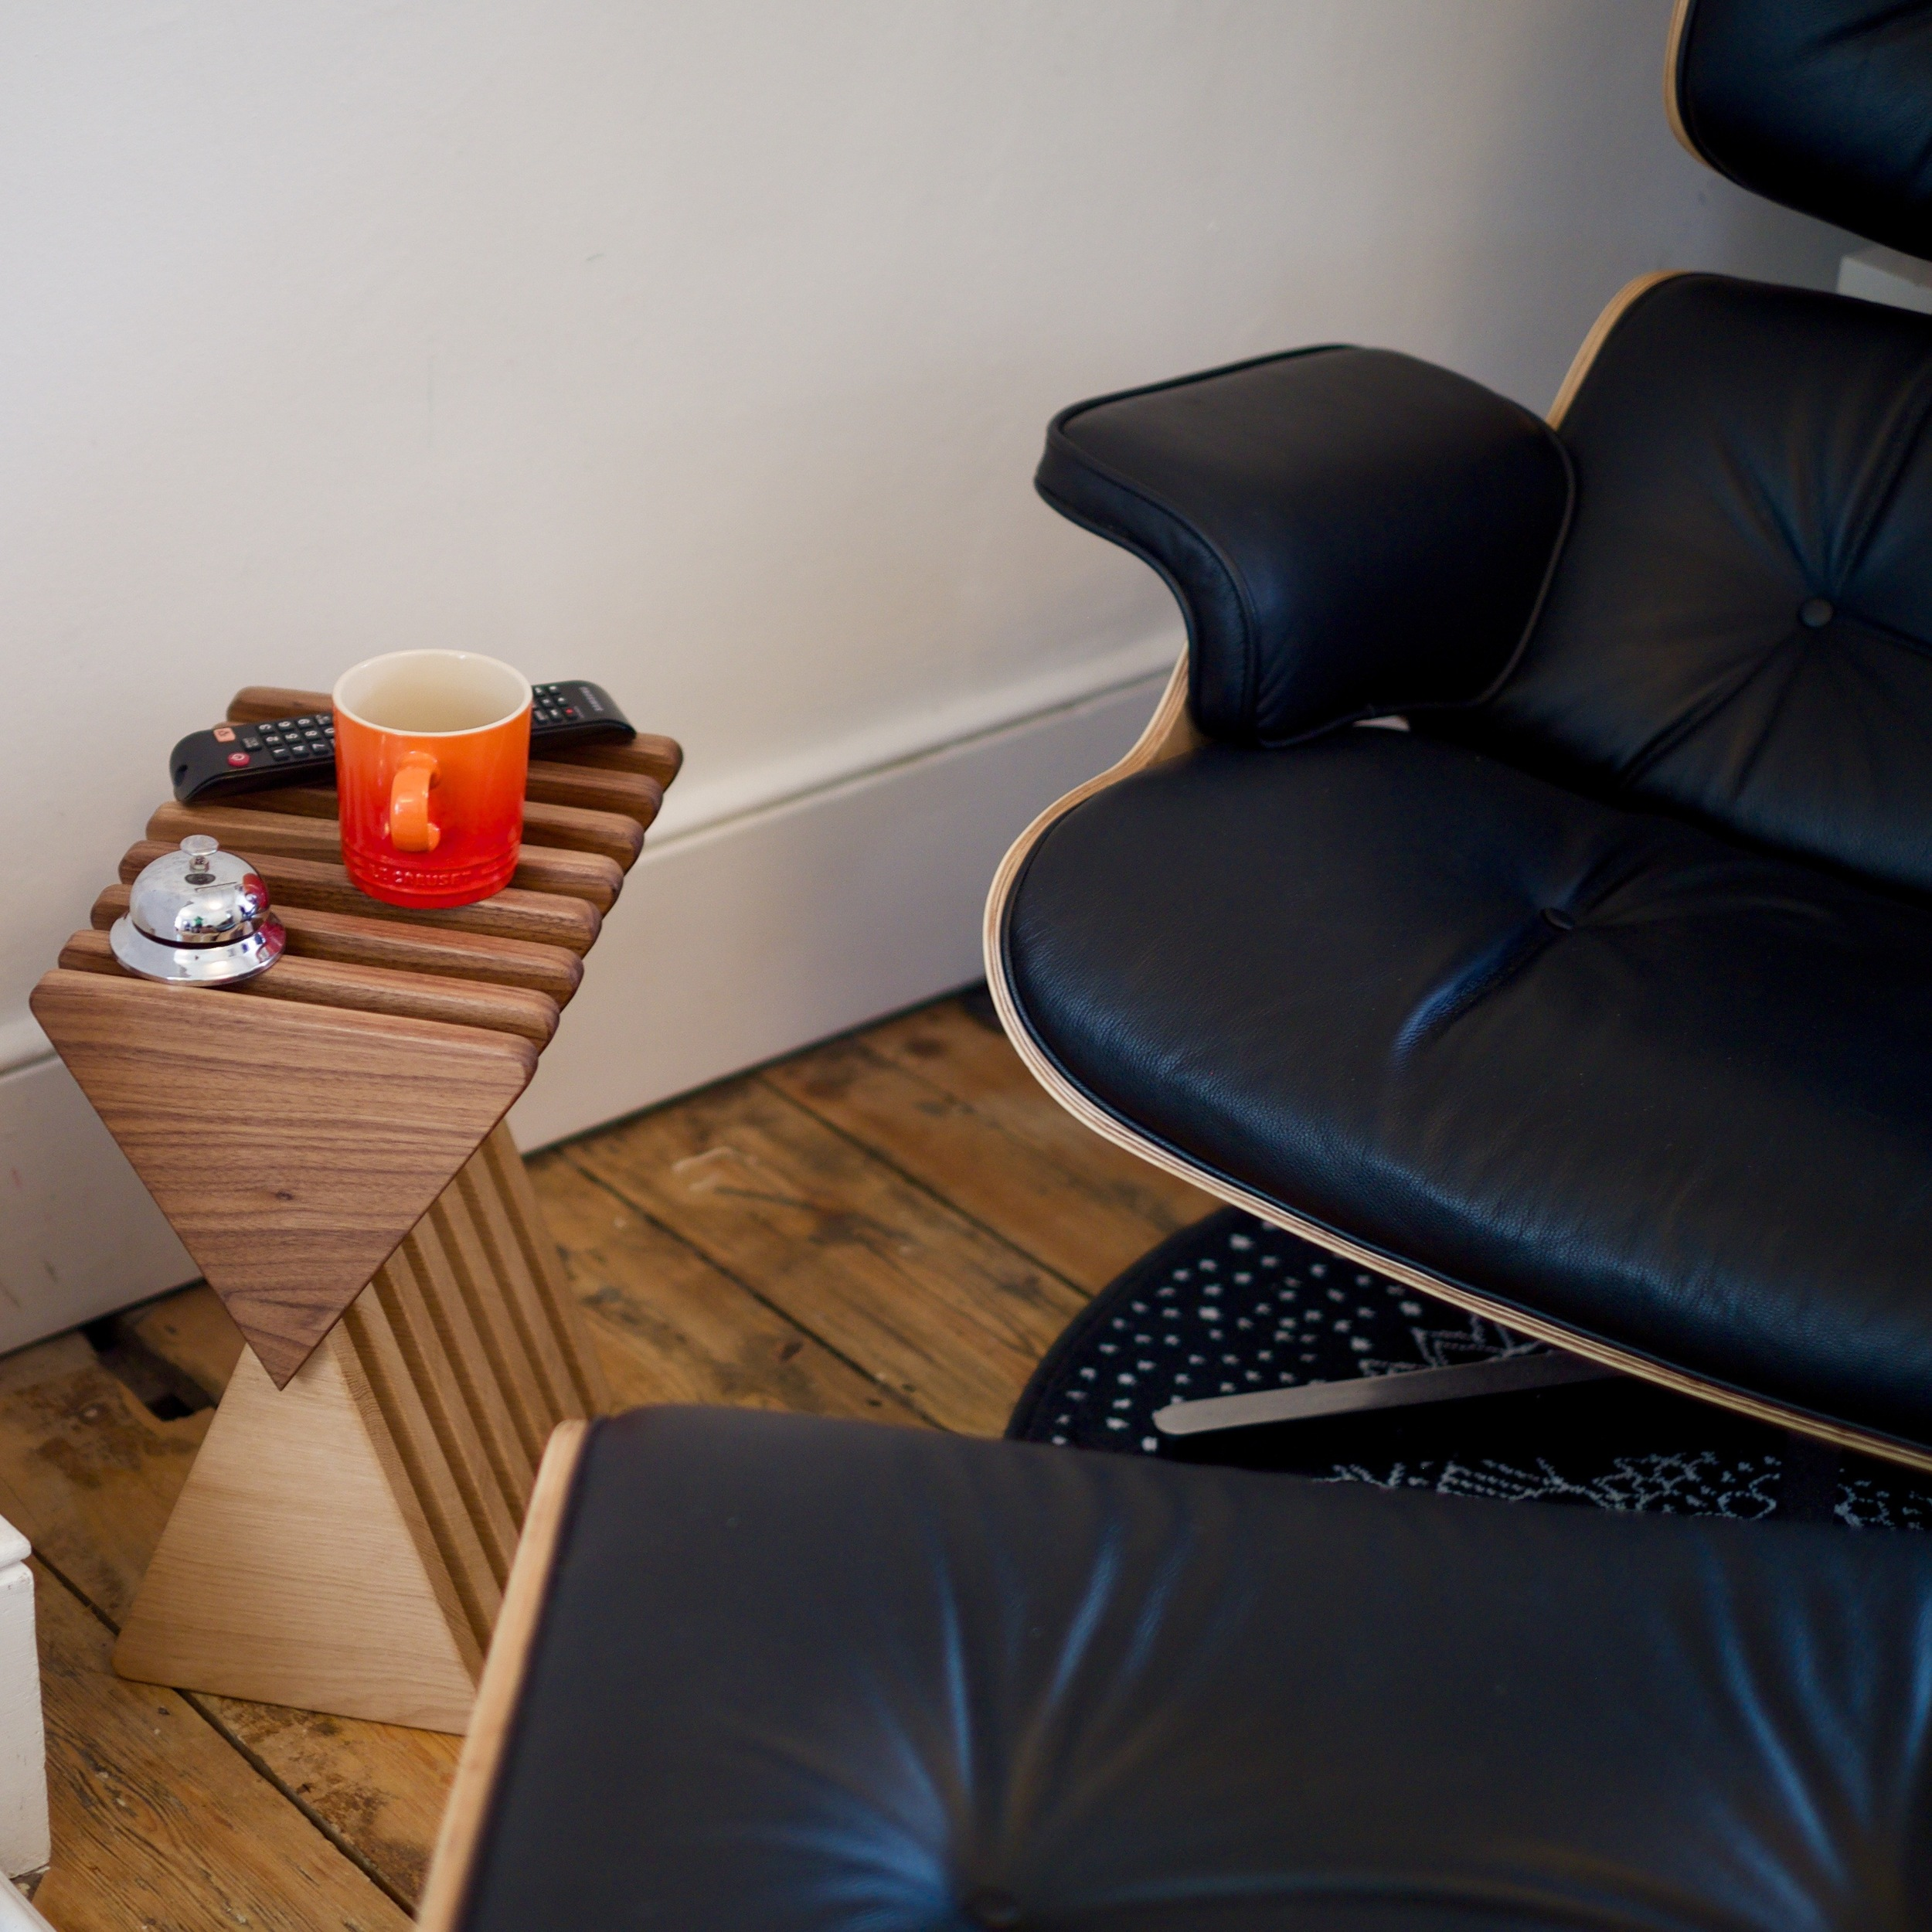 The Vinci Stool - the ultimate accessory for an Eames Lounger